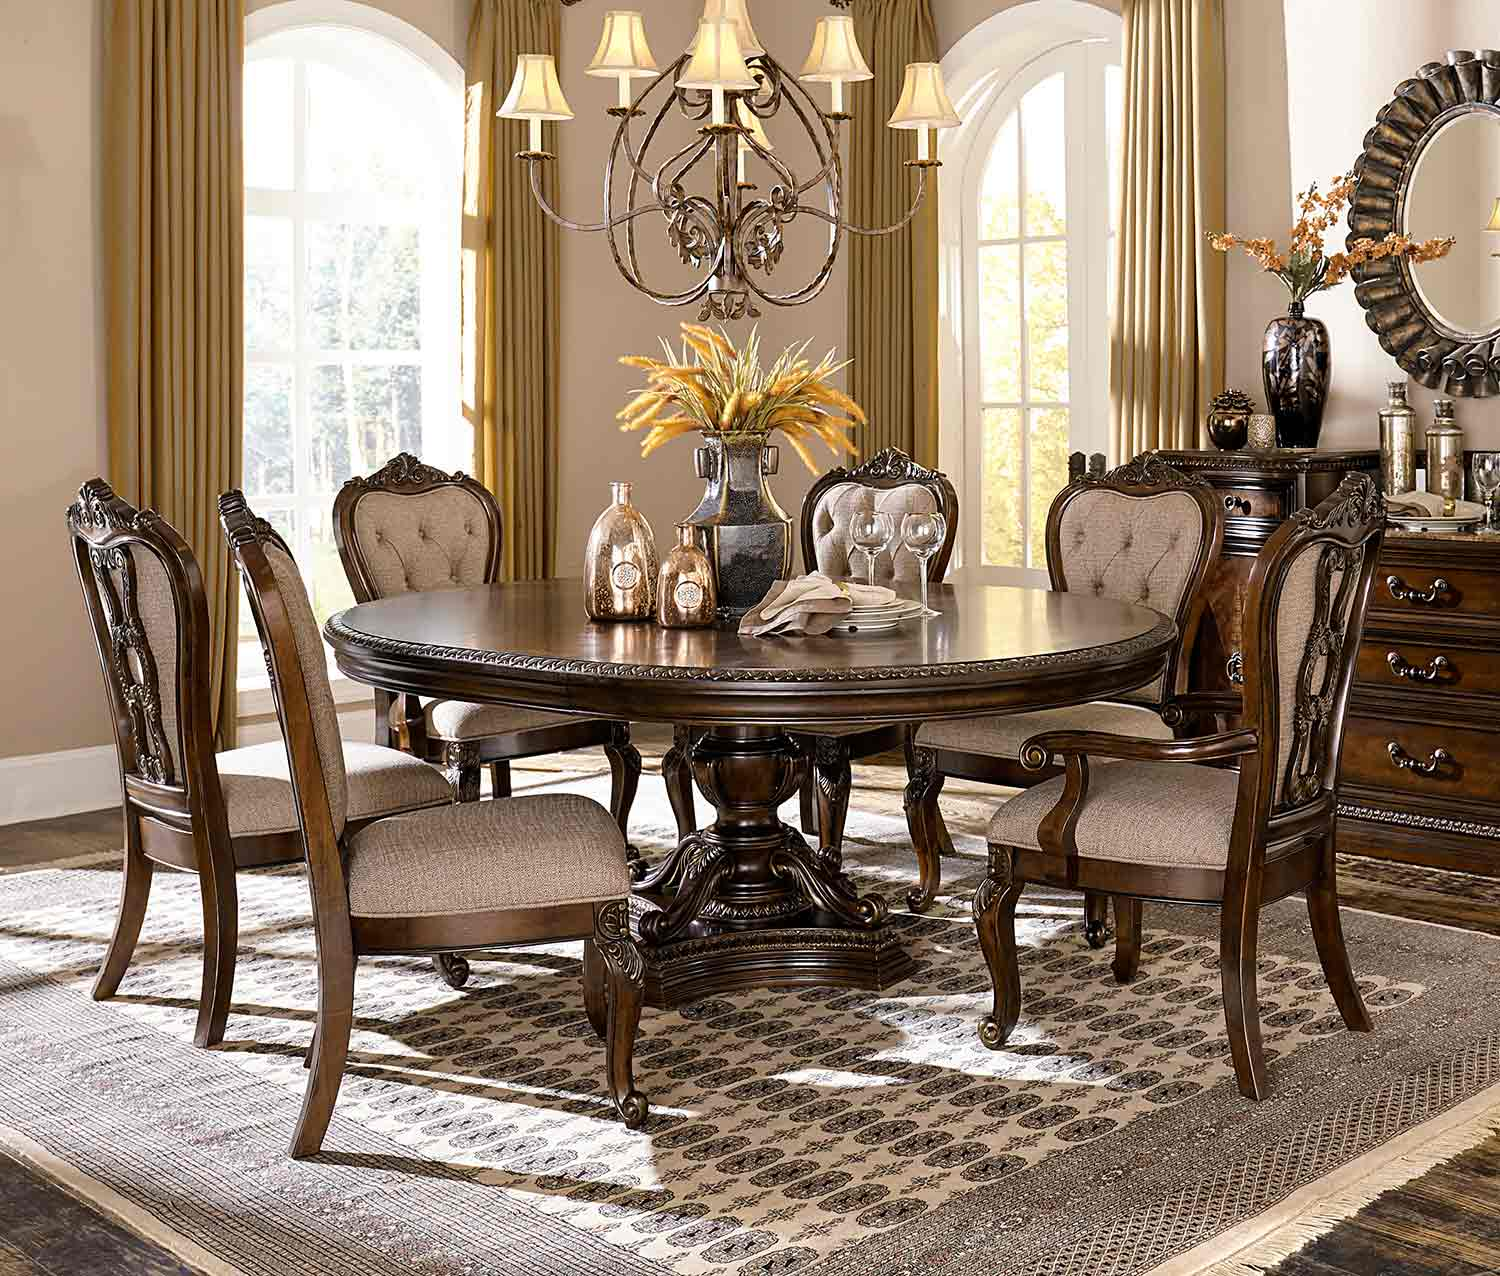 Homelegance Bonaventure Park Round/Oval Dining Set - Gold-Highlighted Cherry